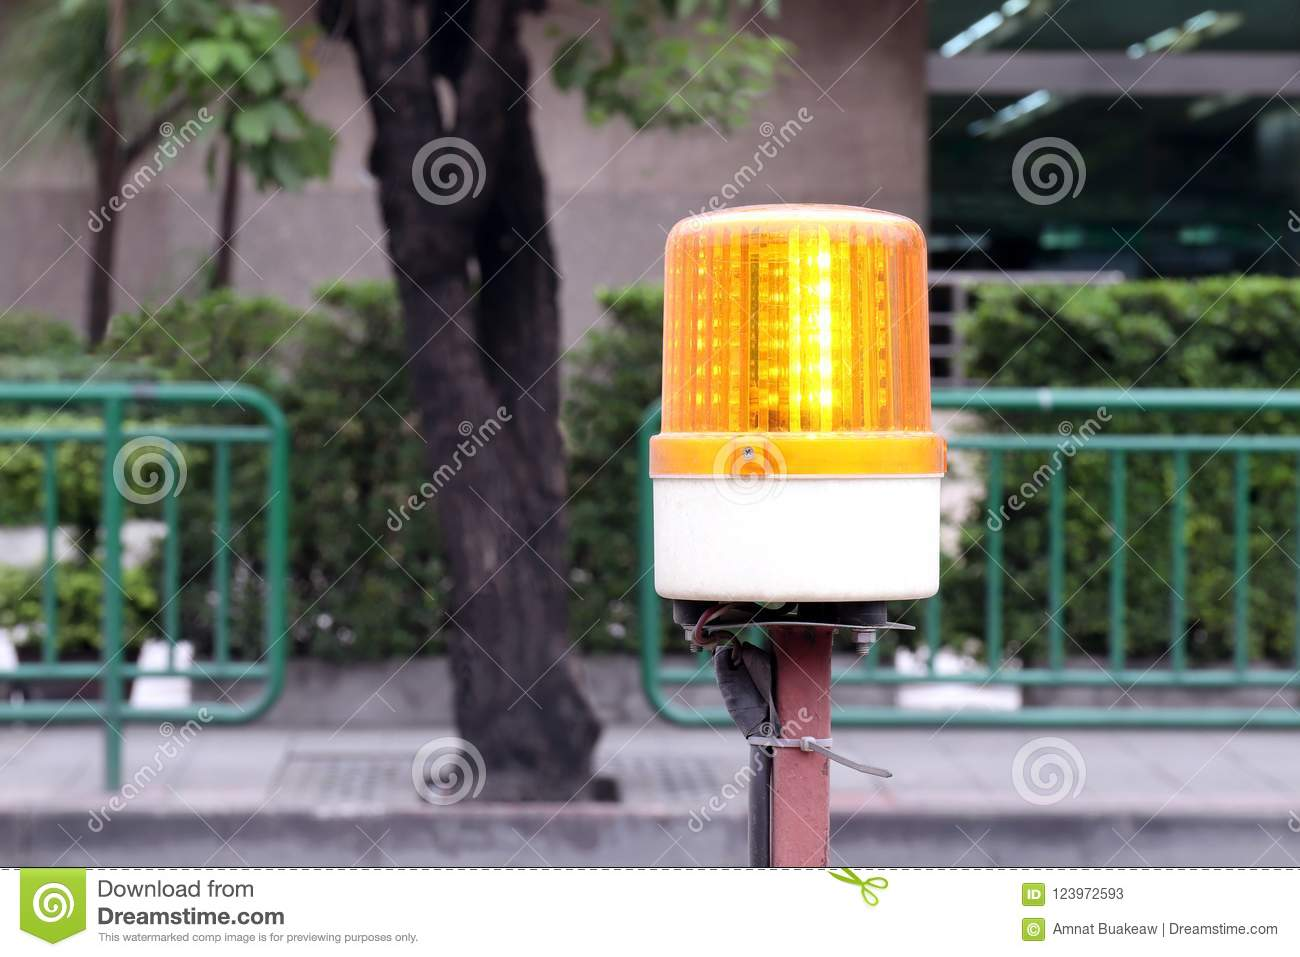 Warning Light Clipart Flashing Beacon Lights For Road Works Safety Warning Lights For